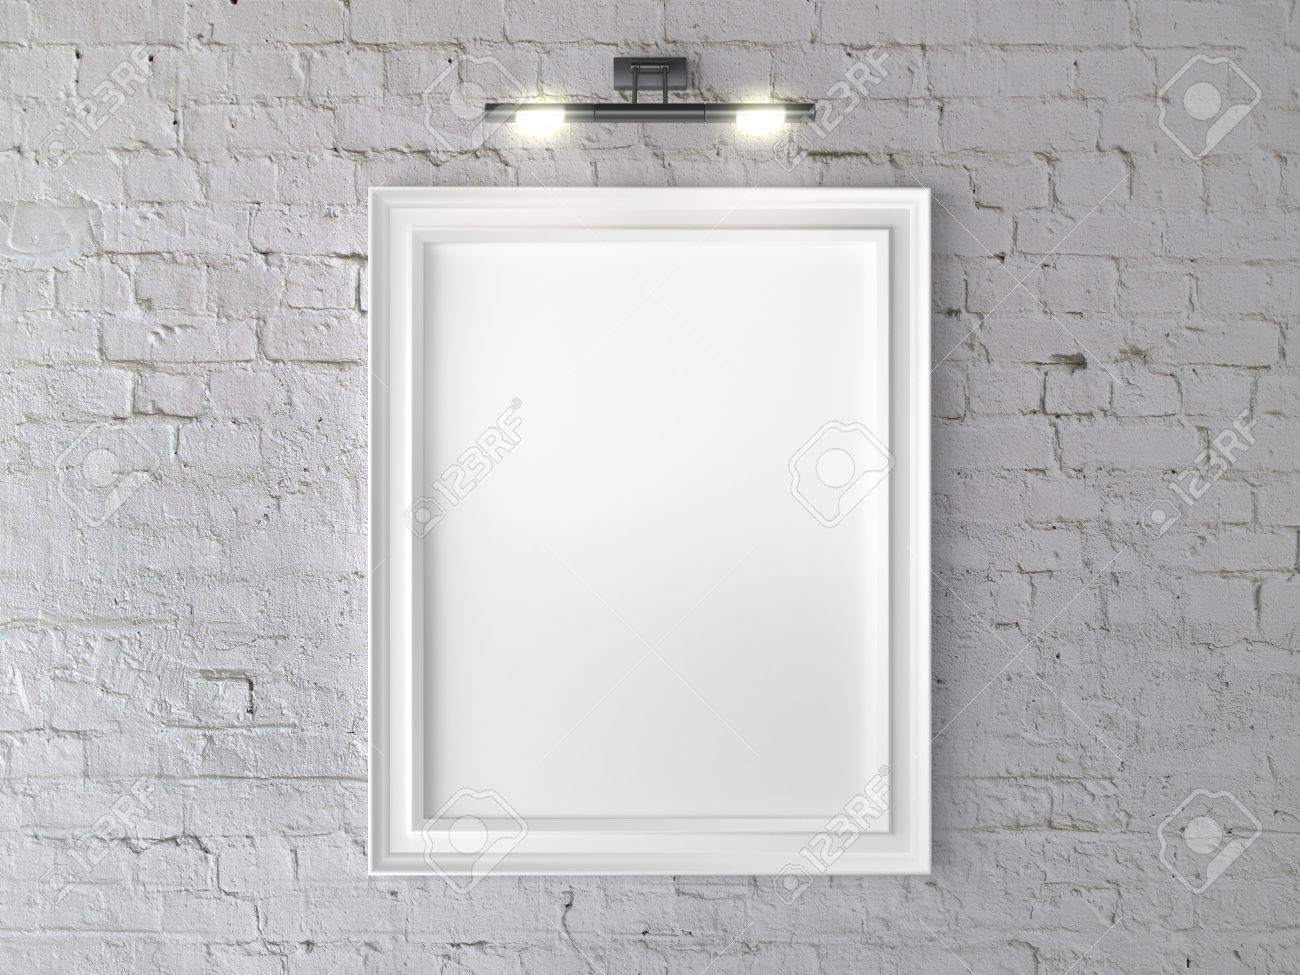 White Frame On Wall With Wall Lamp Stock Photo, Picture And Royalty ...